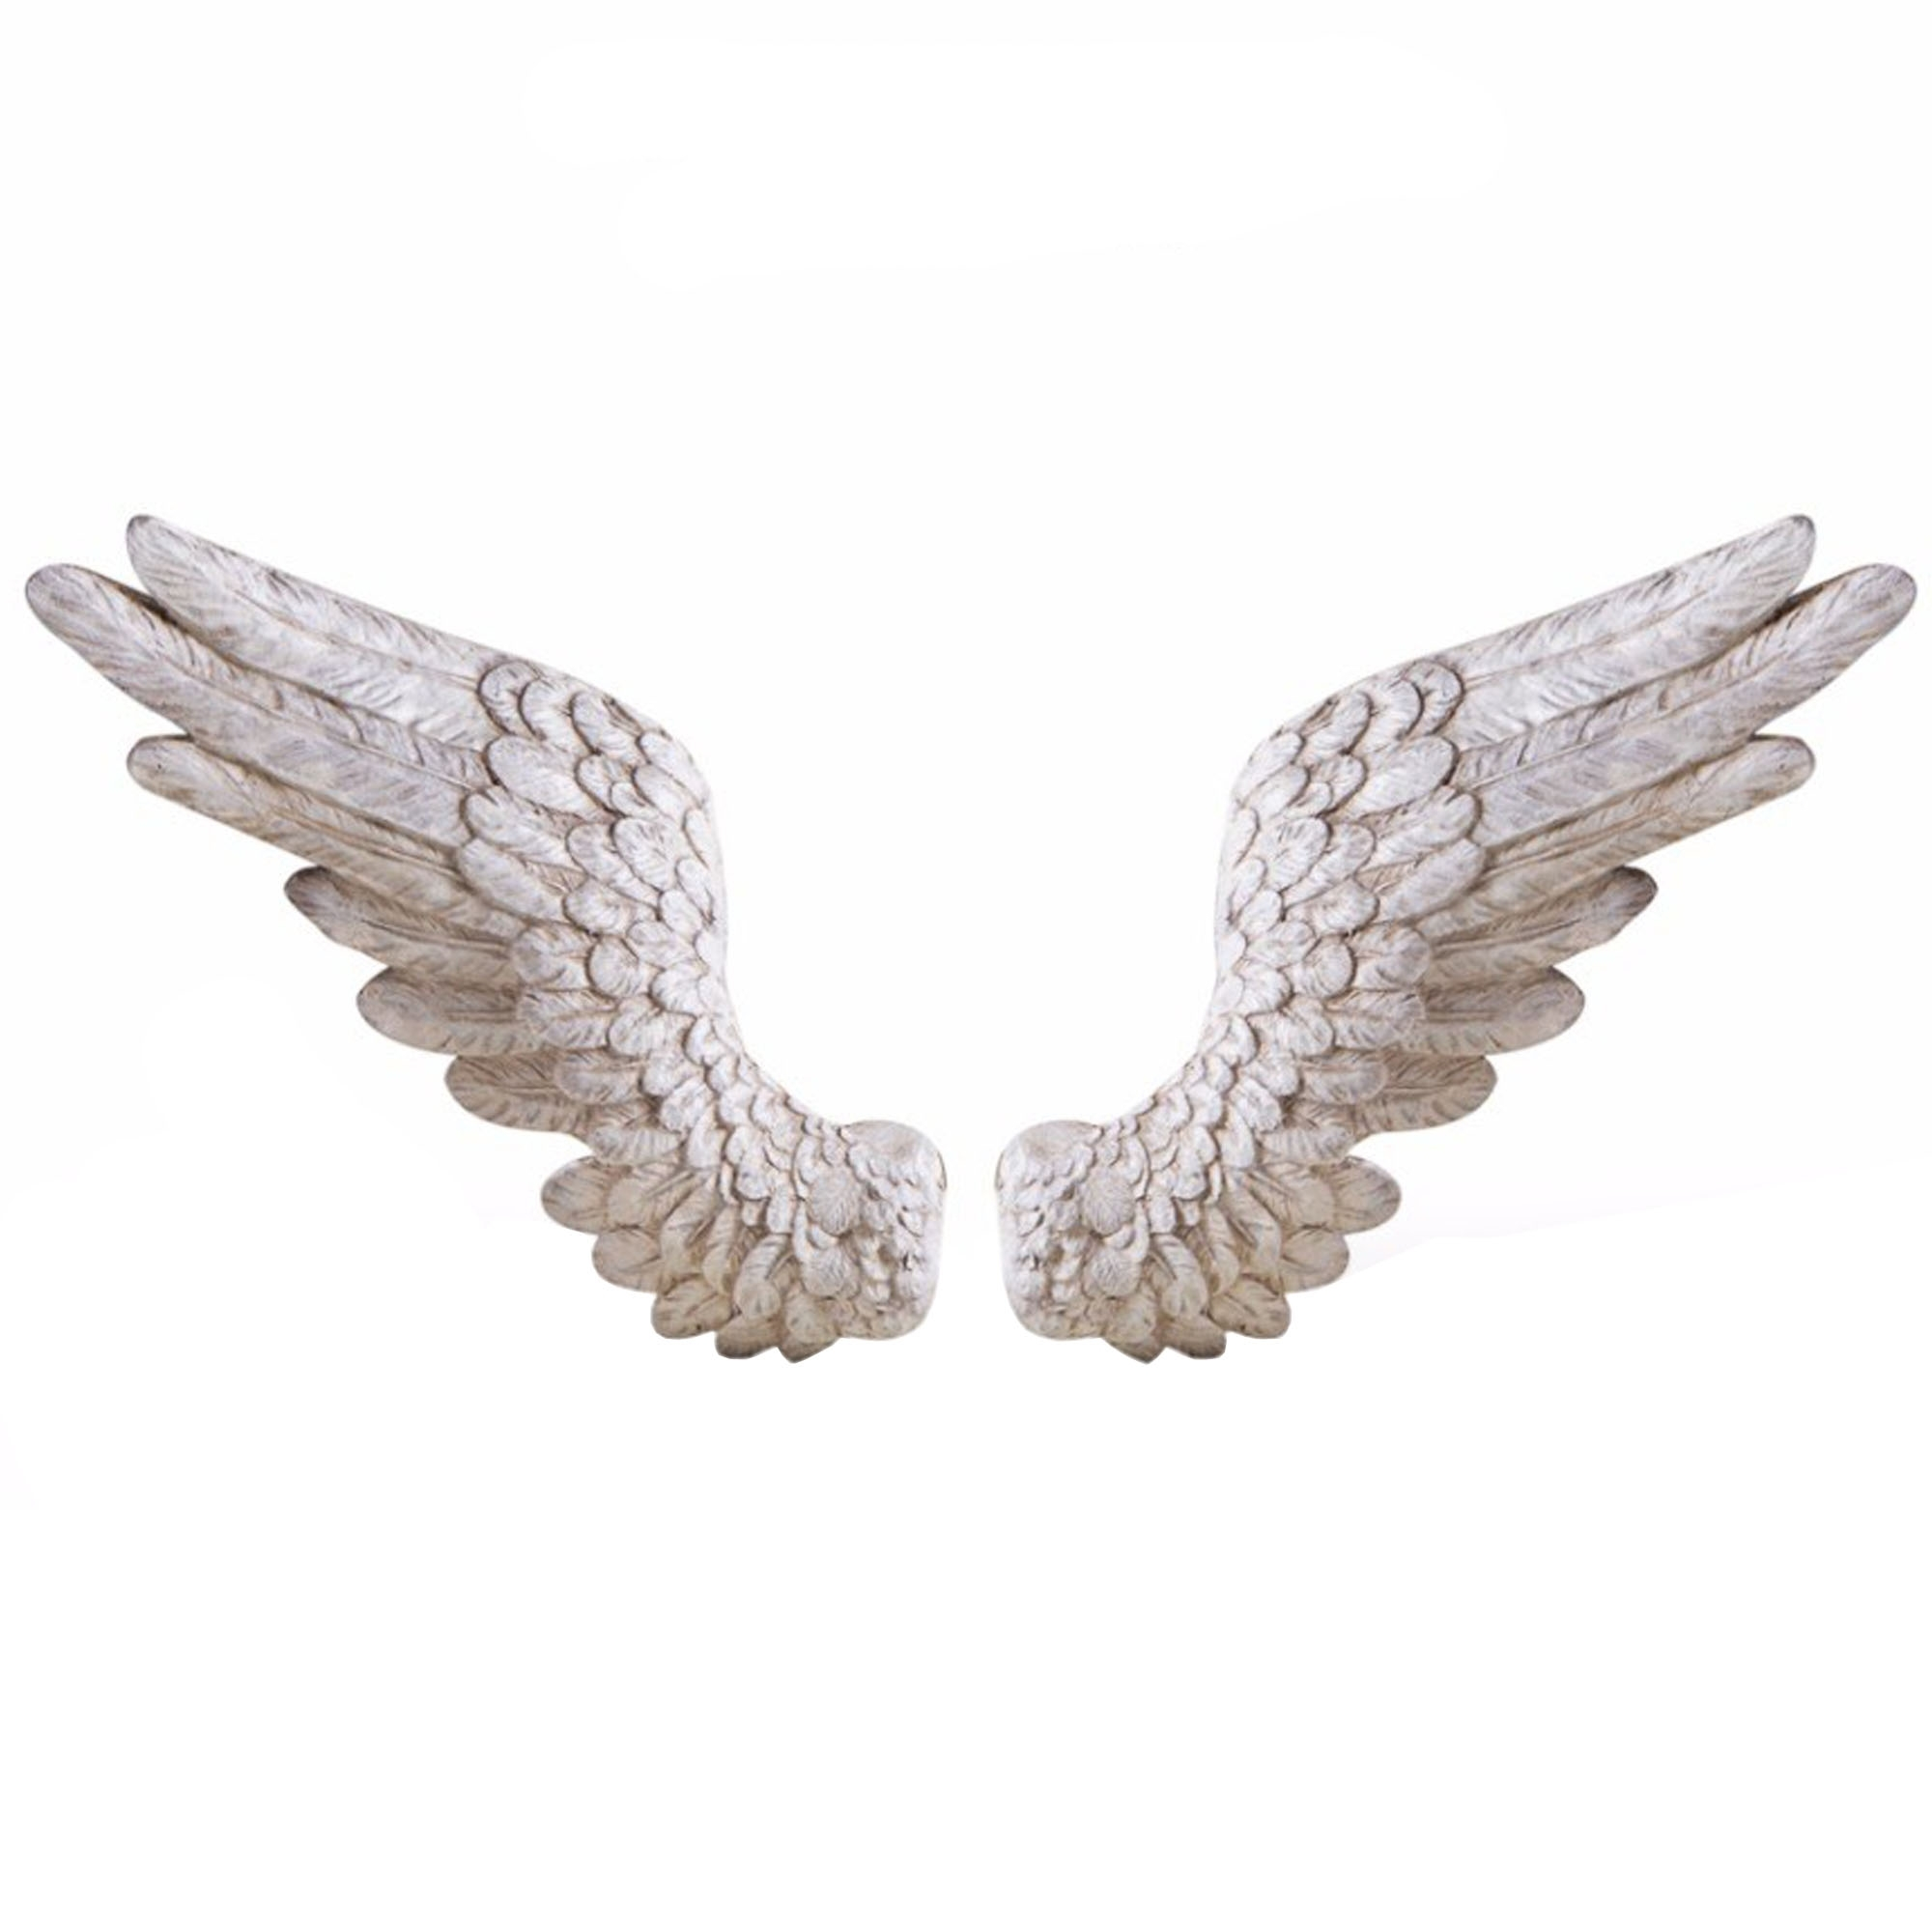 Pair Of Antique White Angel Wings Wall Decor Decor